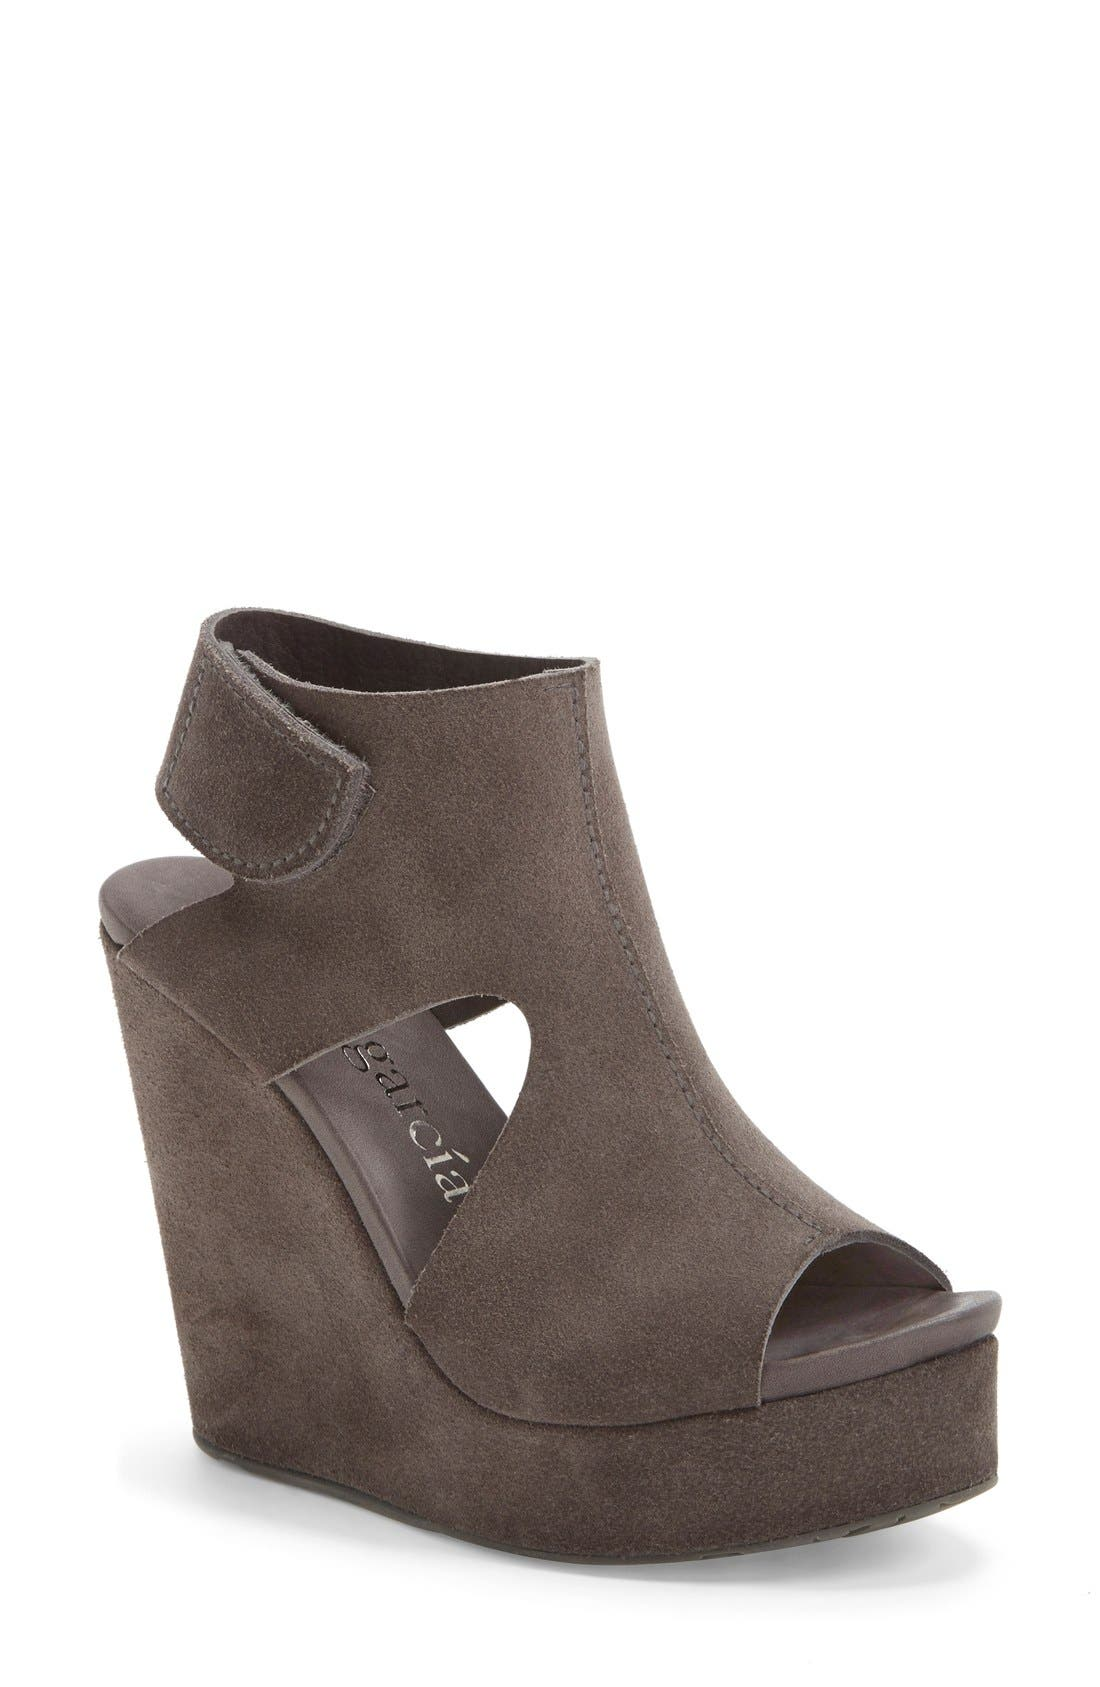 'Terence' Platform Wedge Sandal,                             Main thumbnail 1, color,                             020